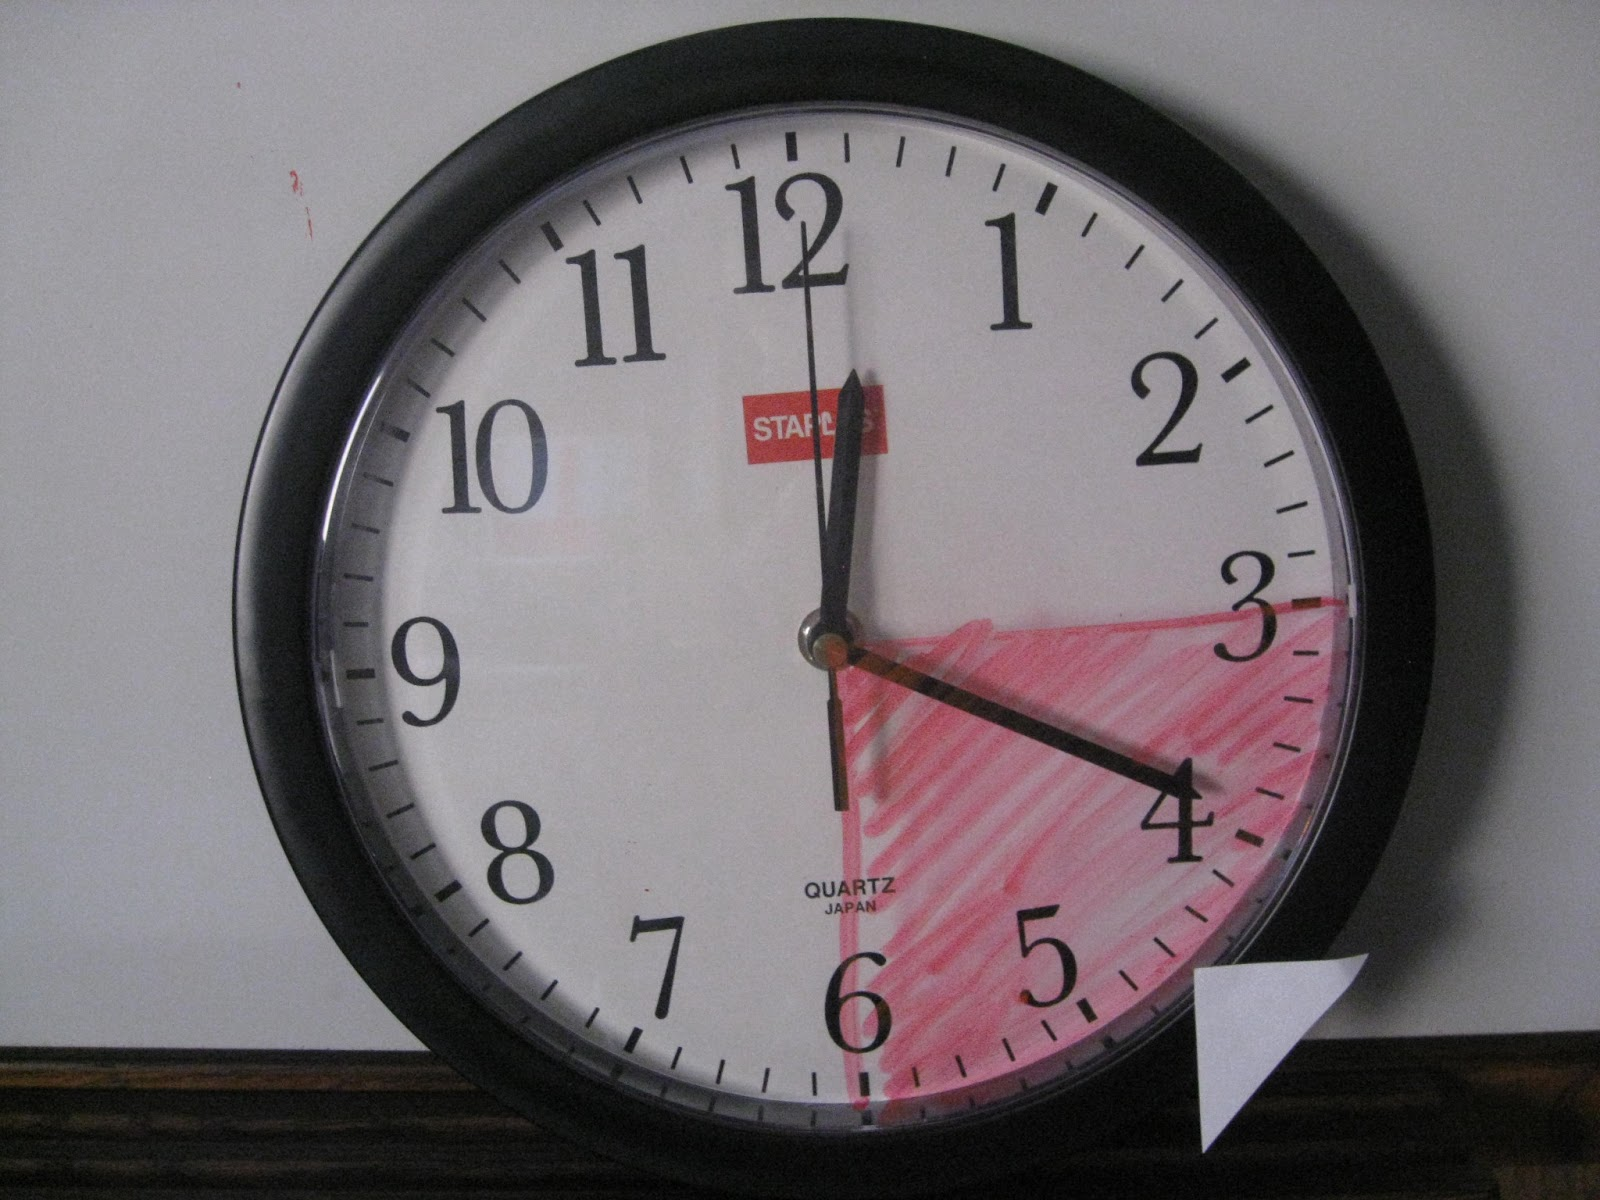 This staples clock does not have a glass face a glass face d clock